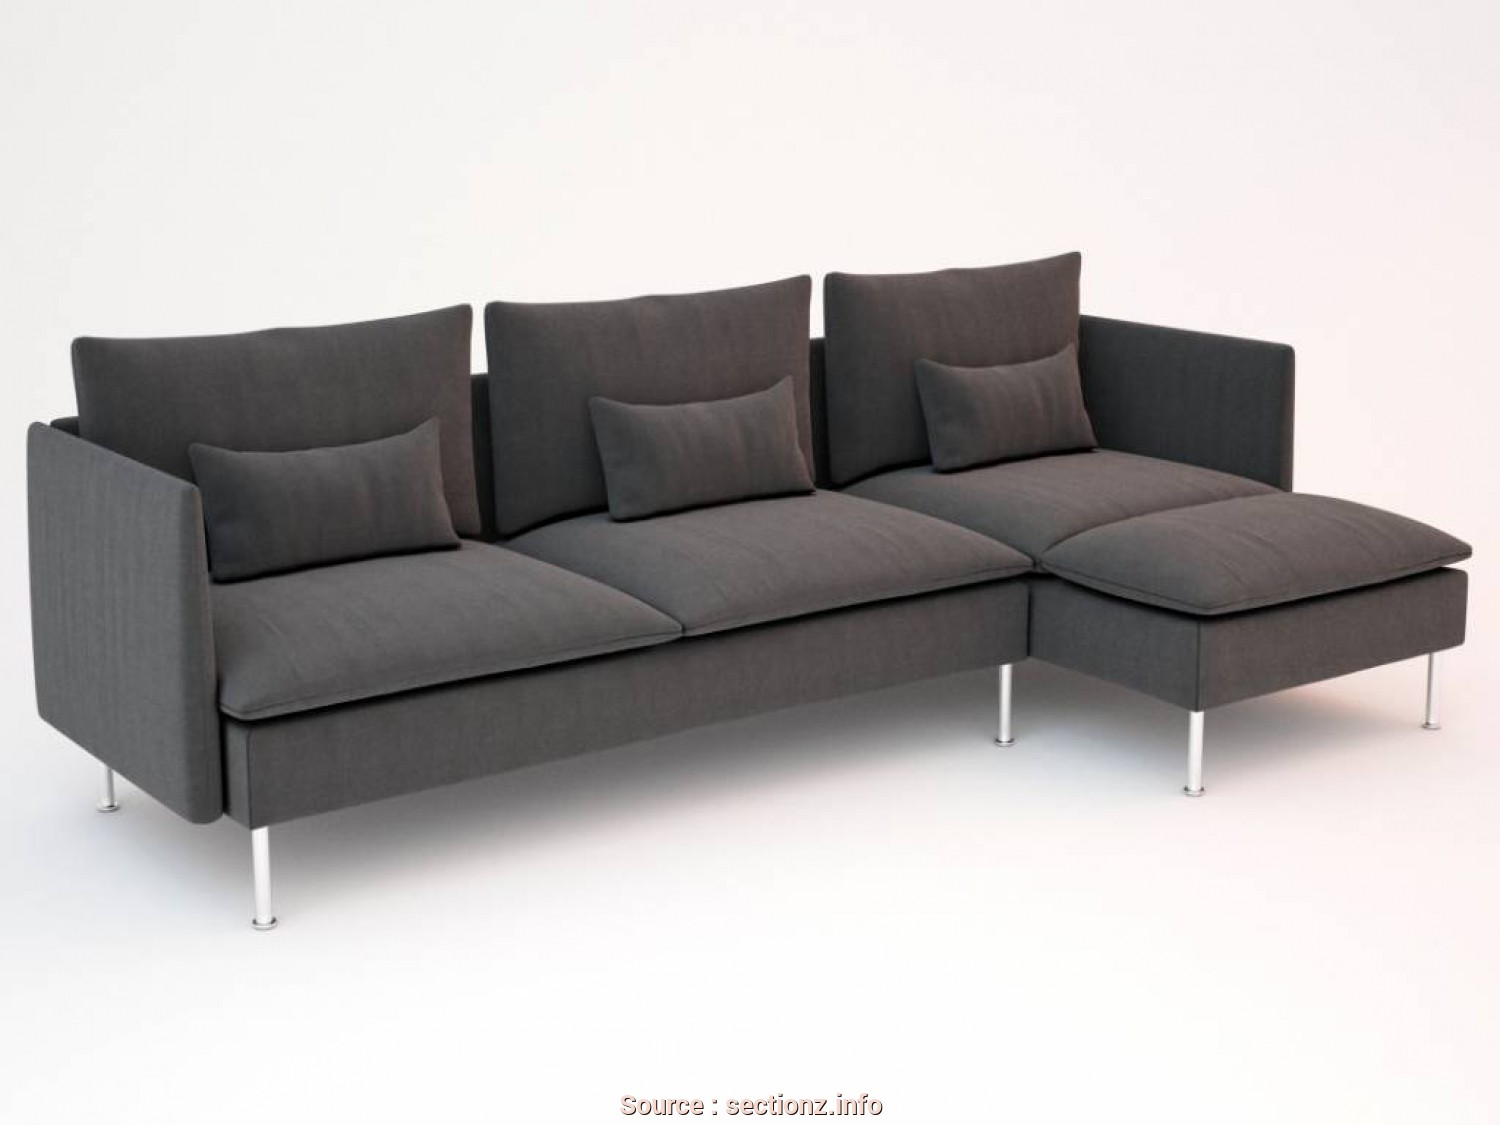 Sofa Cama Grankulla Ikea, Amabile New King Size Sleeper Sofas King Size Sleeper Sofas Of Ikea Futons